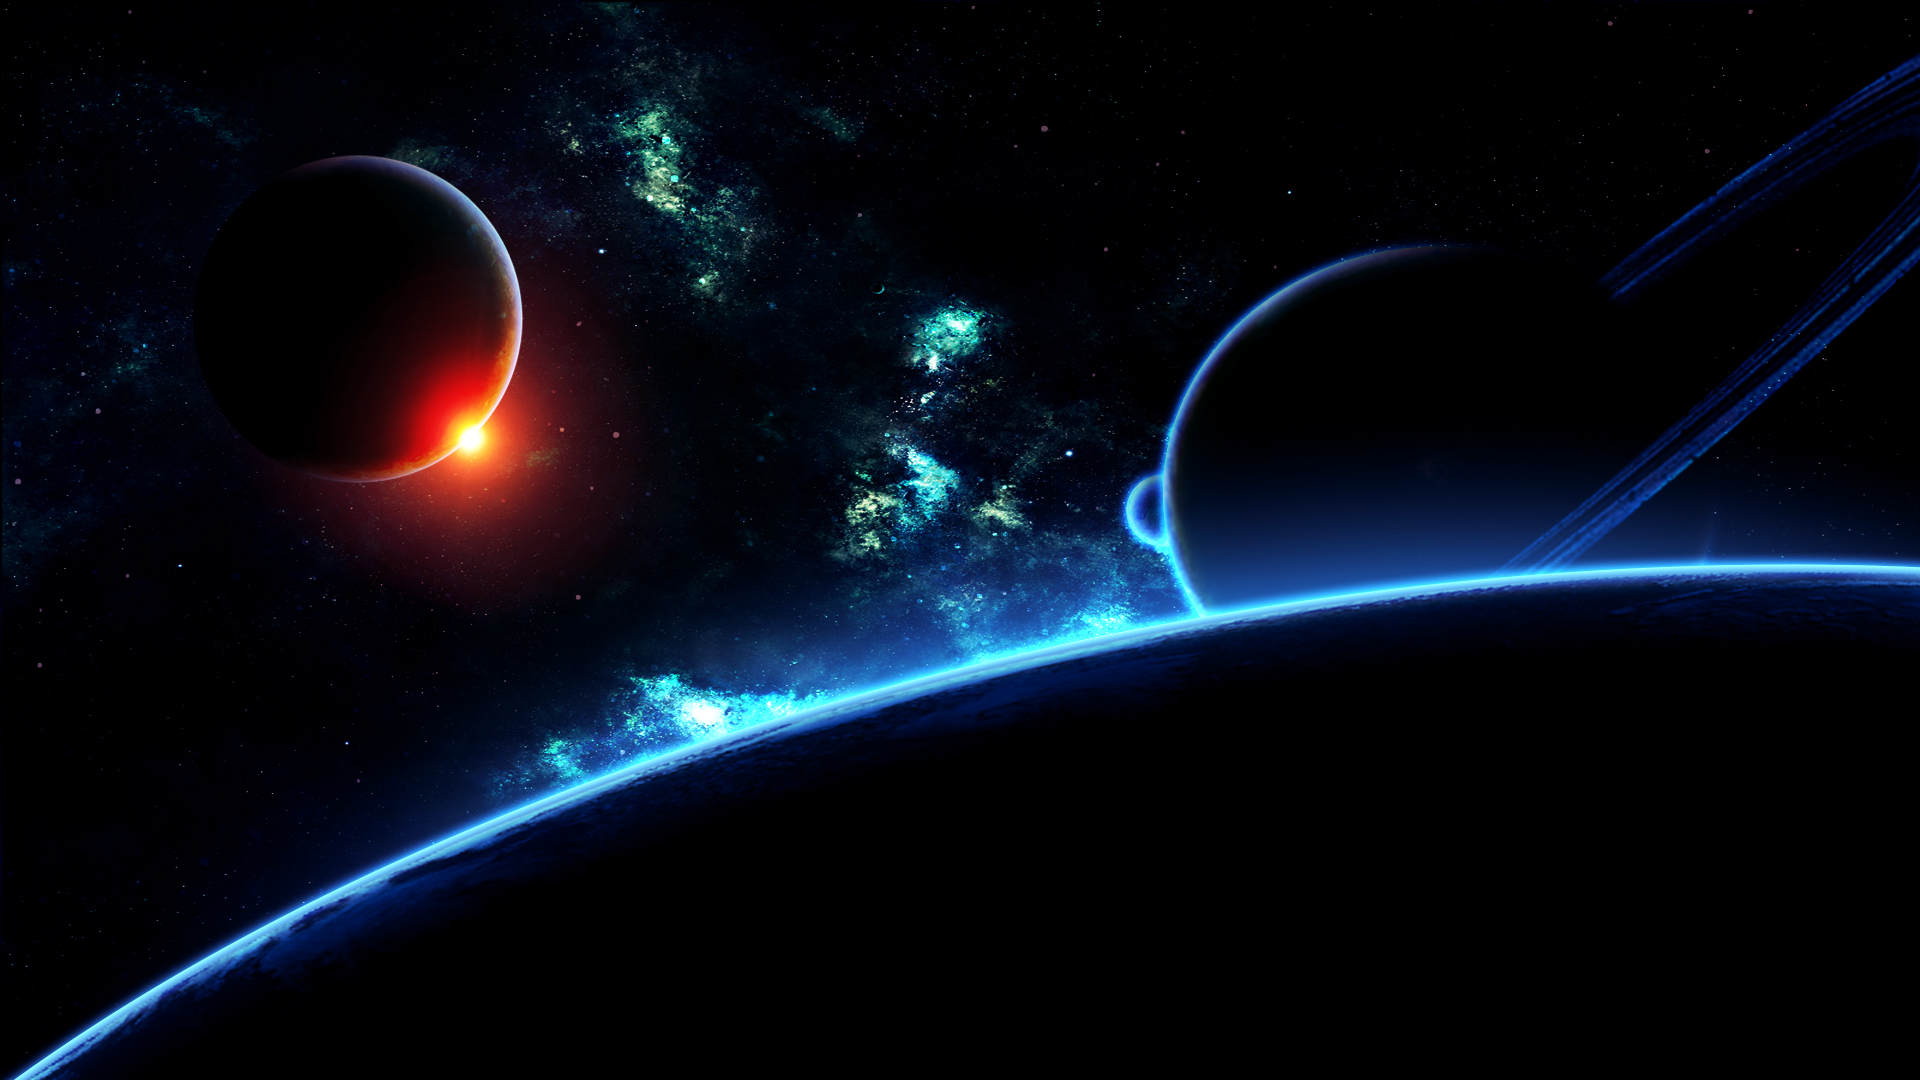 Deep space hd wallpapers - Deep space wallpaper hd ...